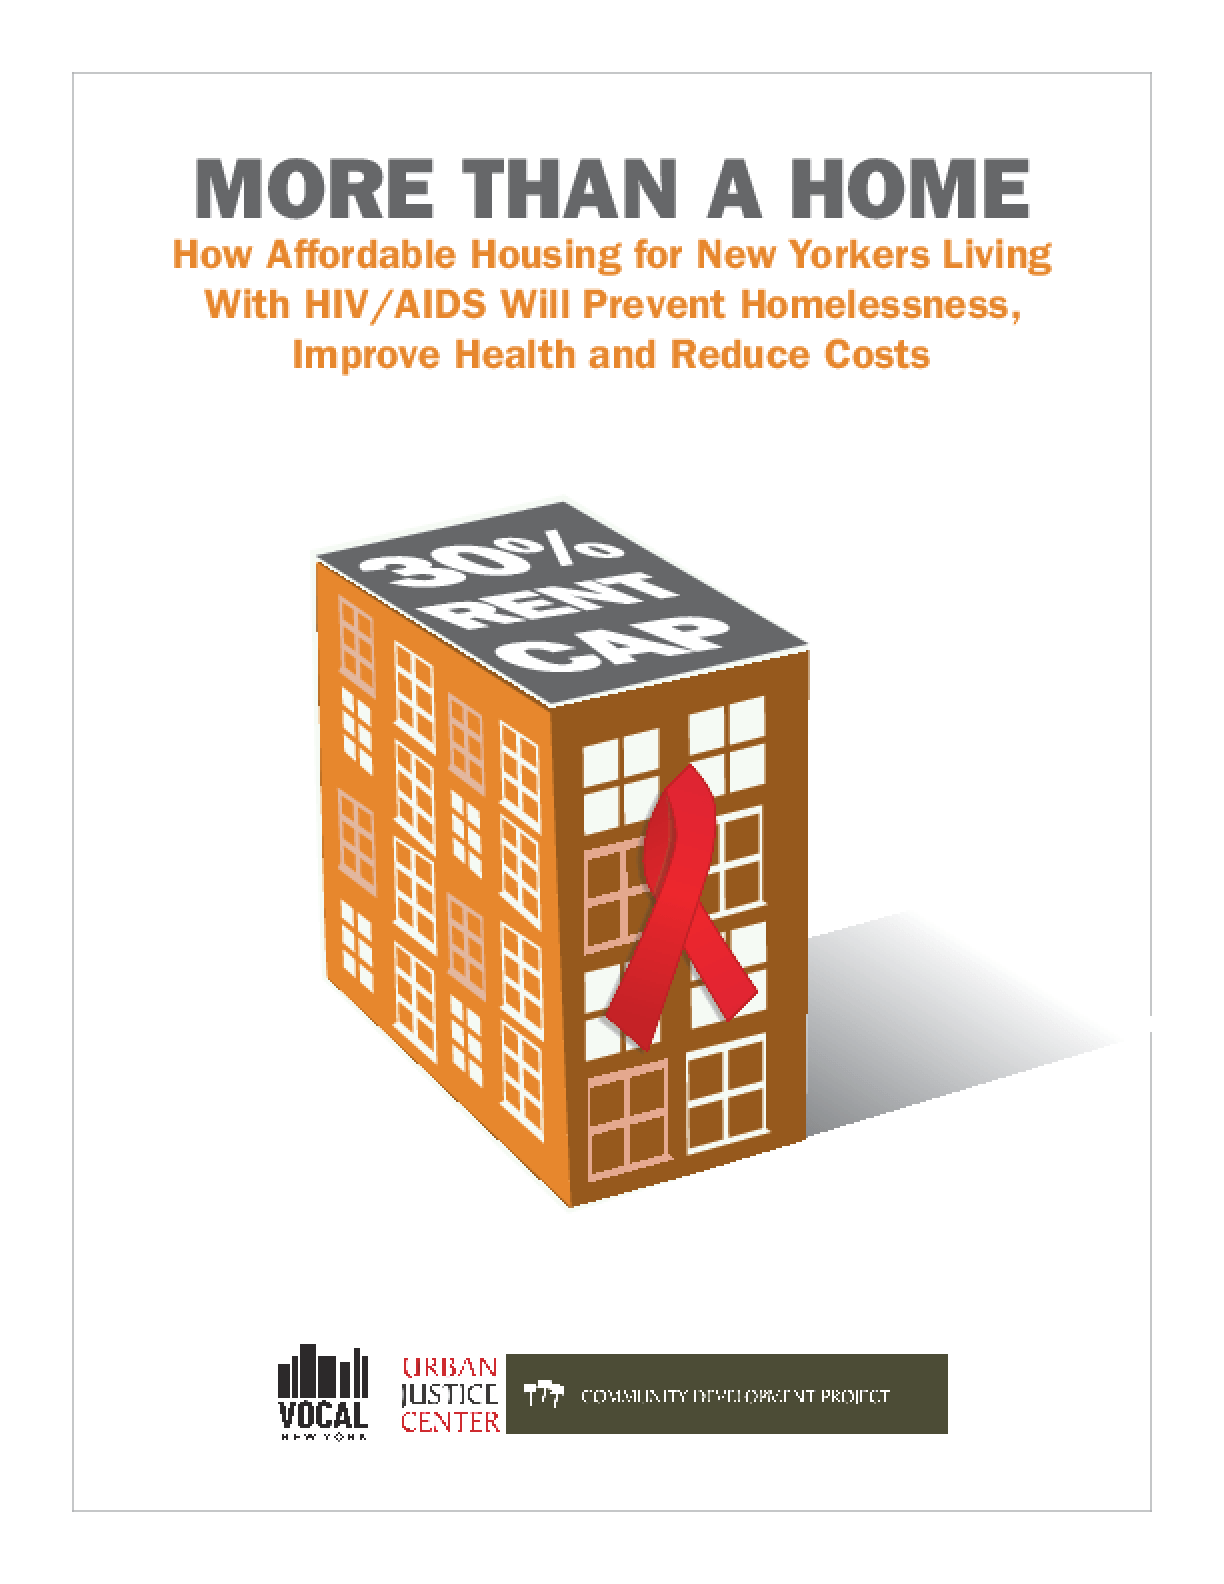 More Than a Home: How Affordable Housing for New Yorkers Living with HIV/AIDS Will Prevent Homelessness, Improve Health and Reduce Costs